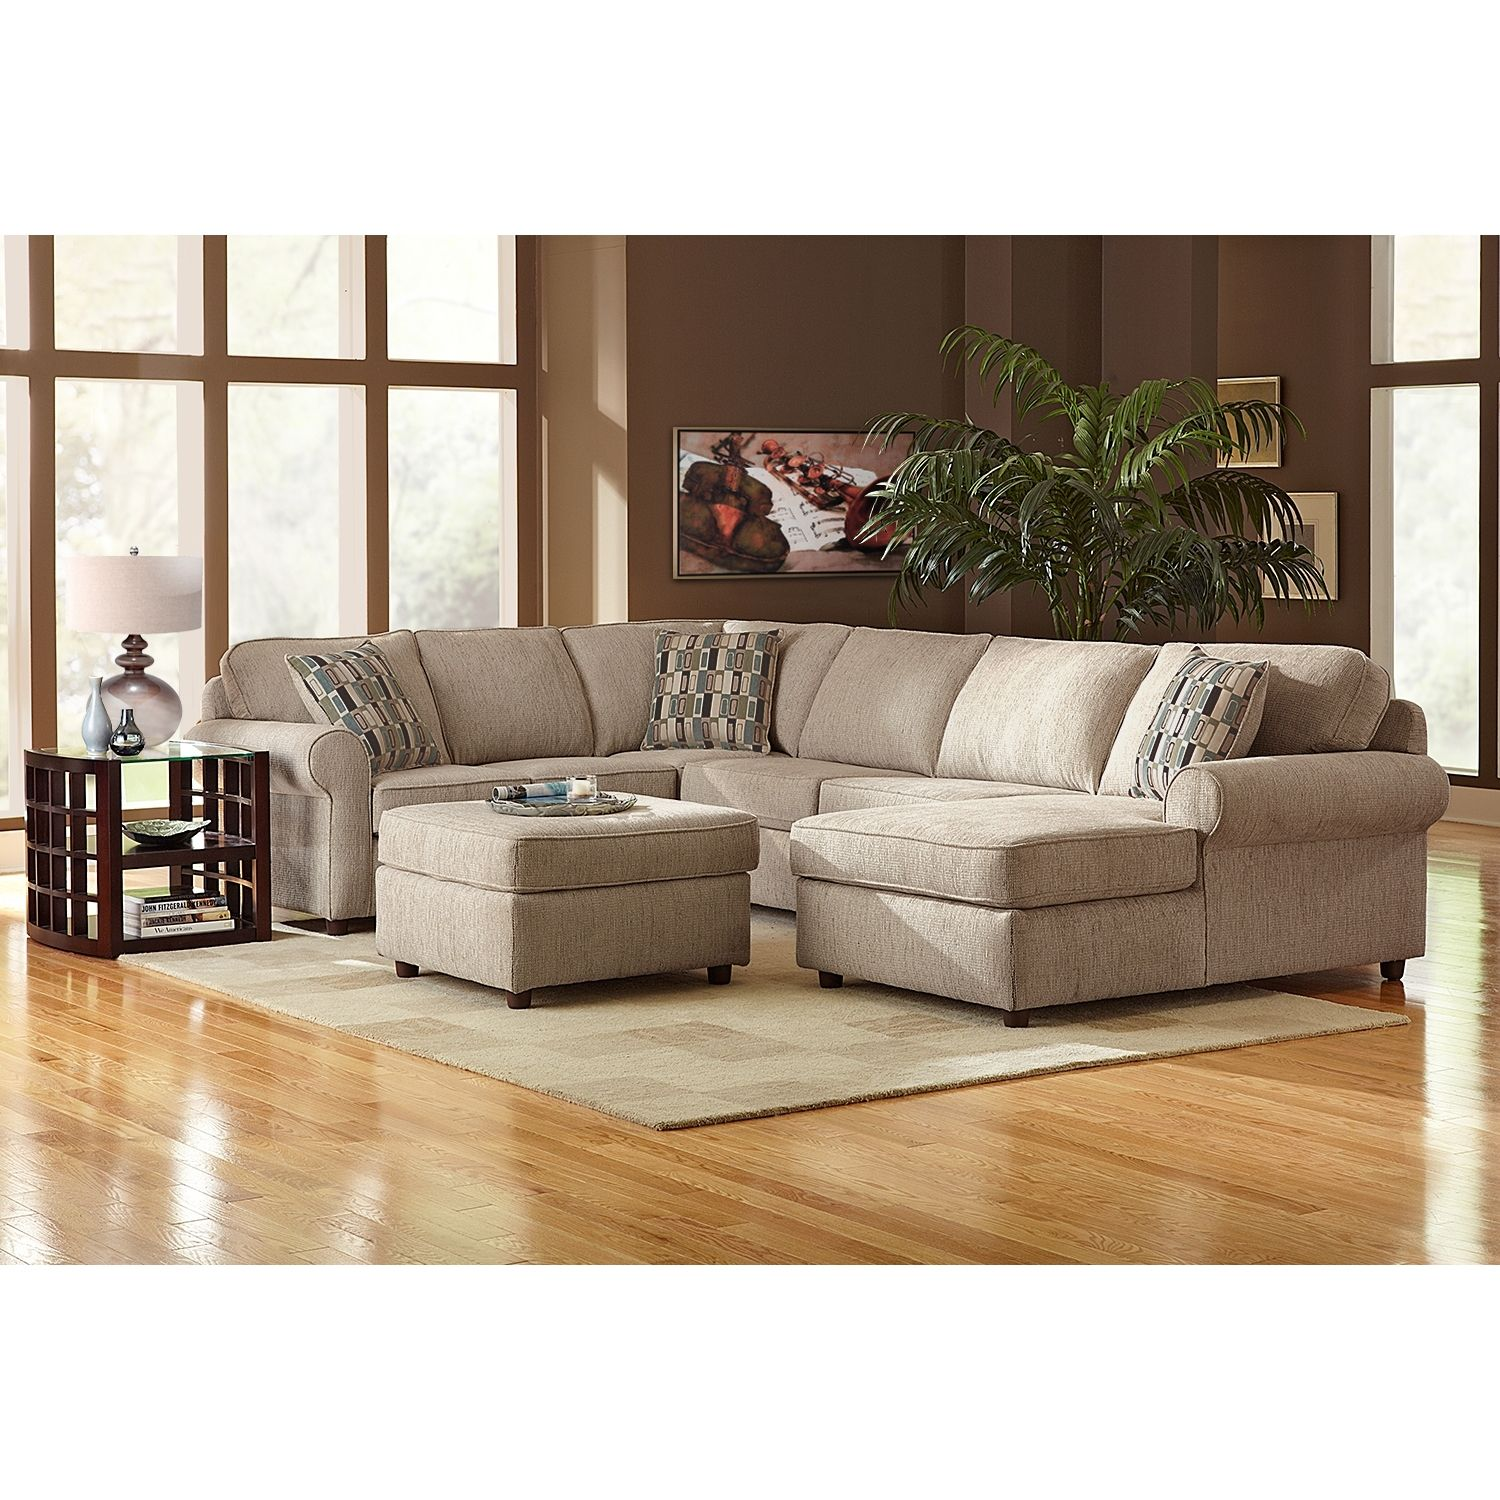 Monarch II Upholstery 3 Pc Sectional Furniture